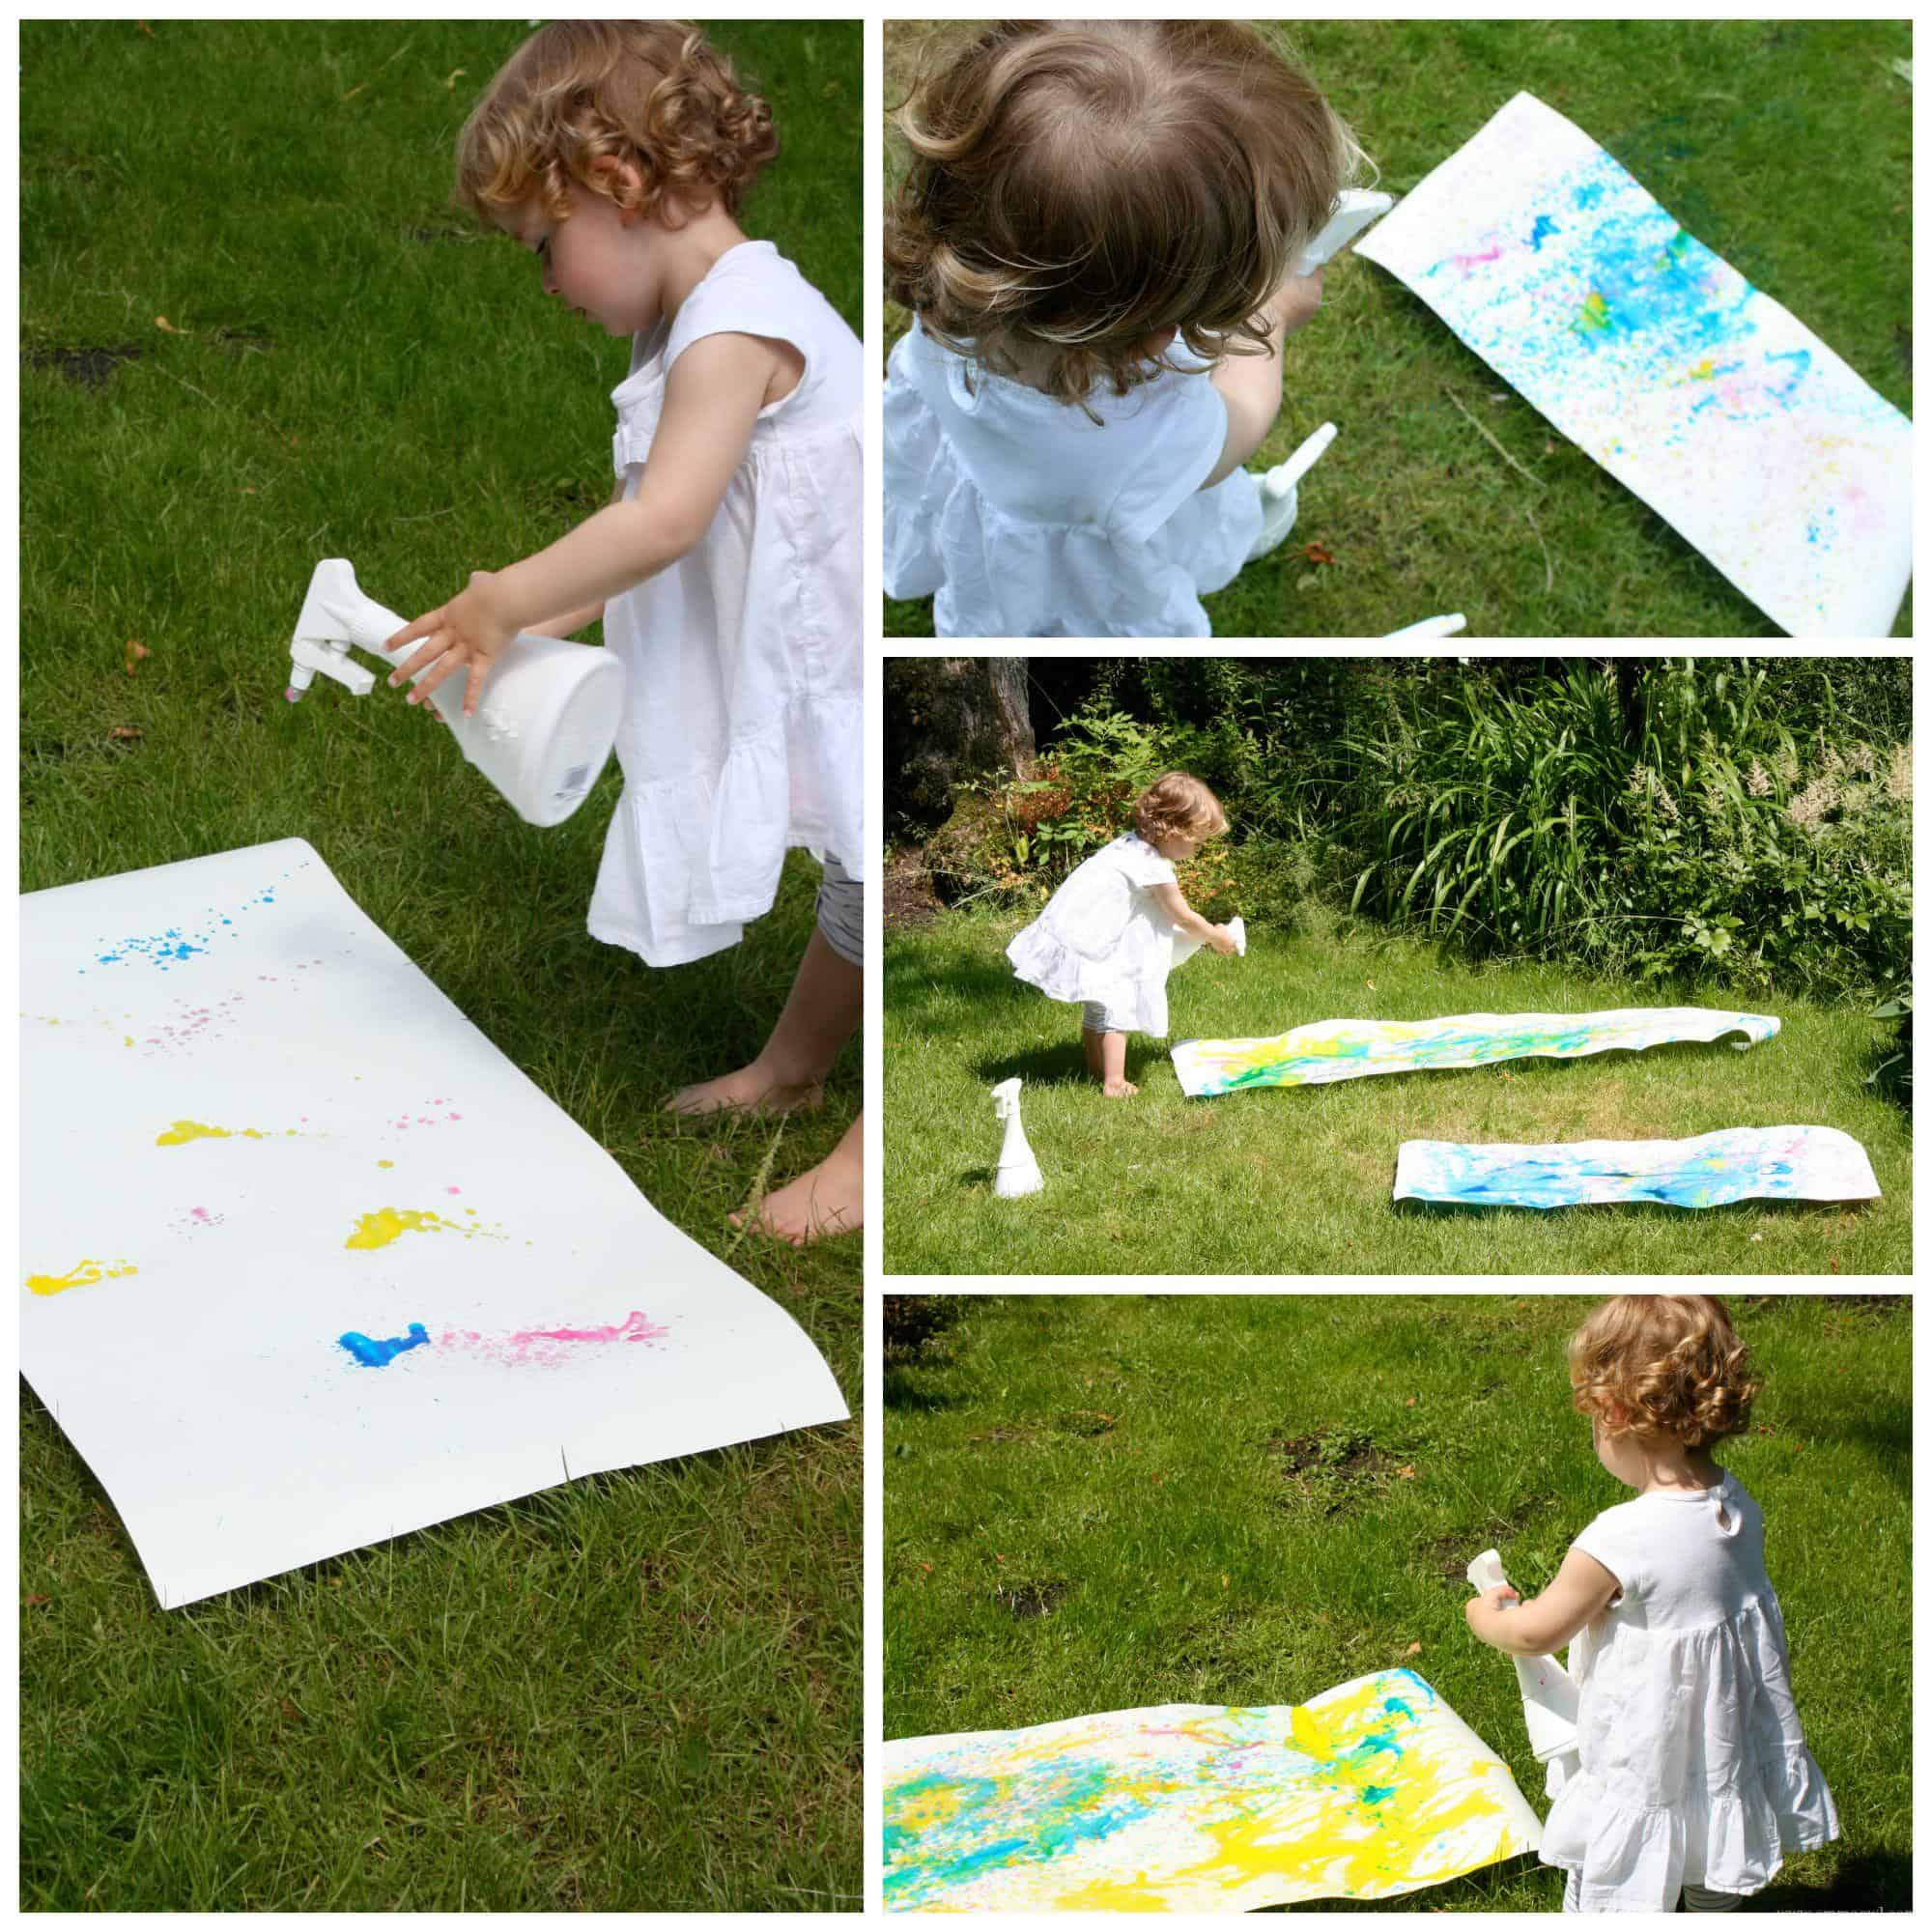 Spray Painting Art Activity for Kids. Process Art is always fun and full of experimentation and learning.